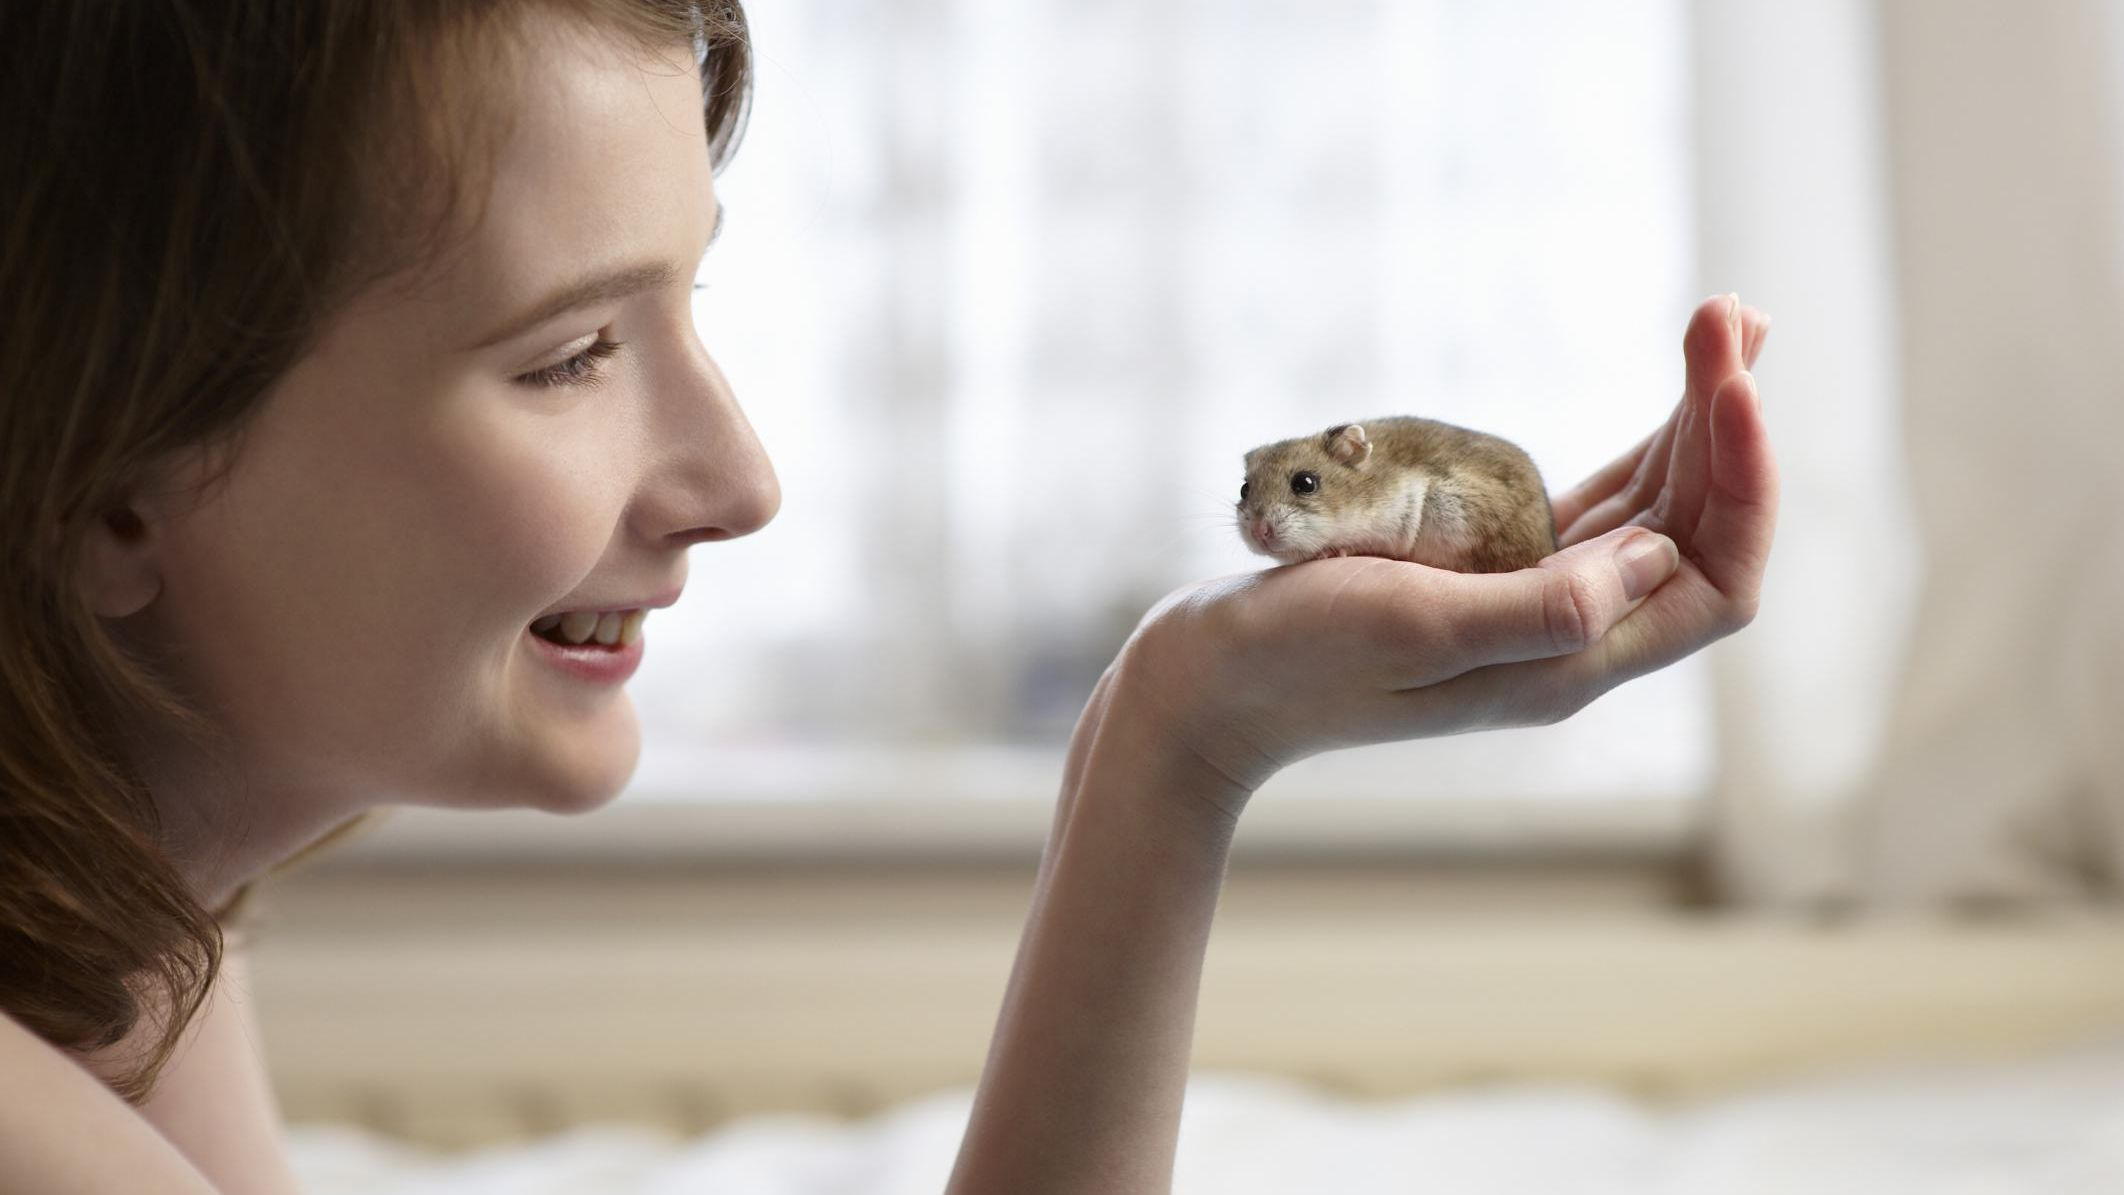 How to train a hamster - Welcome Home New Hamster - How to find if Hamster is Lost